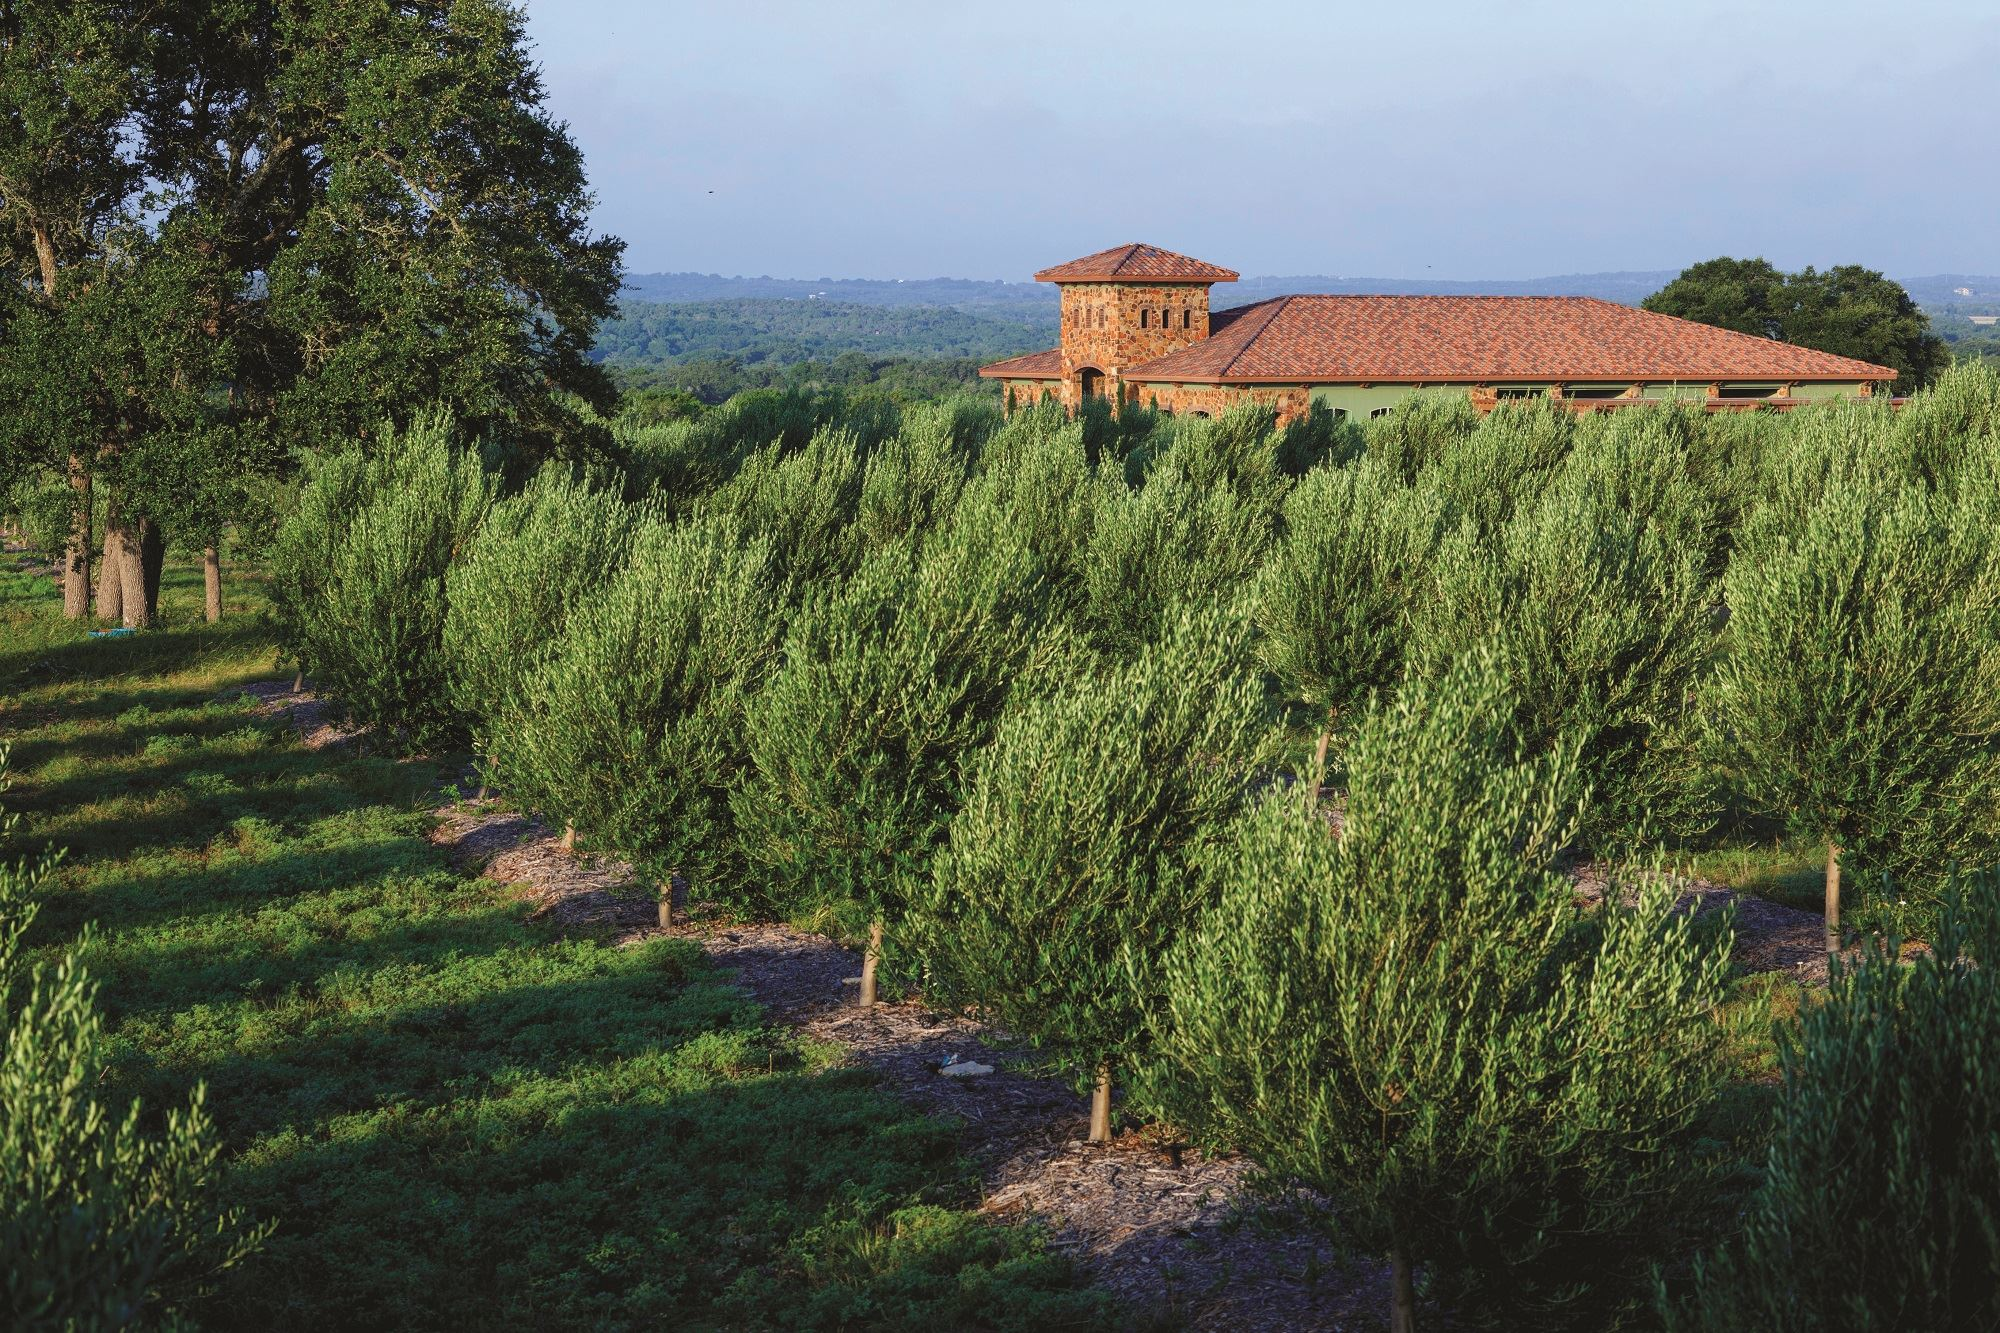 An orchard of olive trees with a Tuscan style building in the background